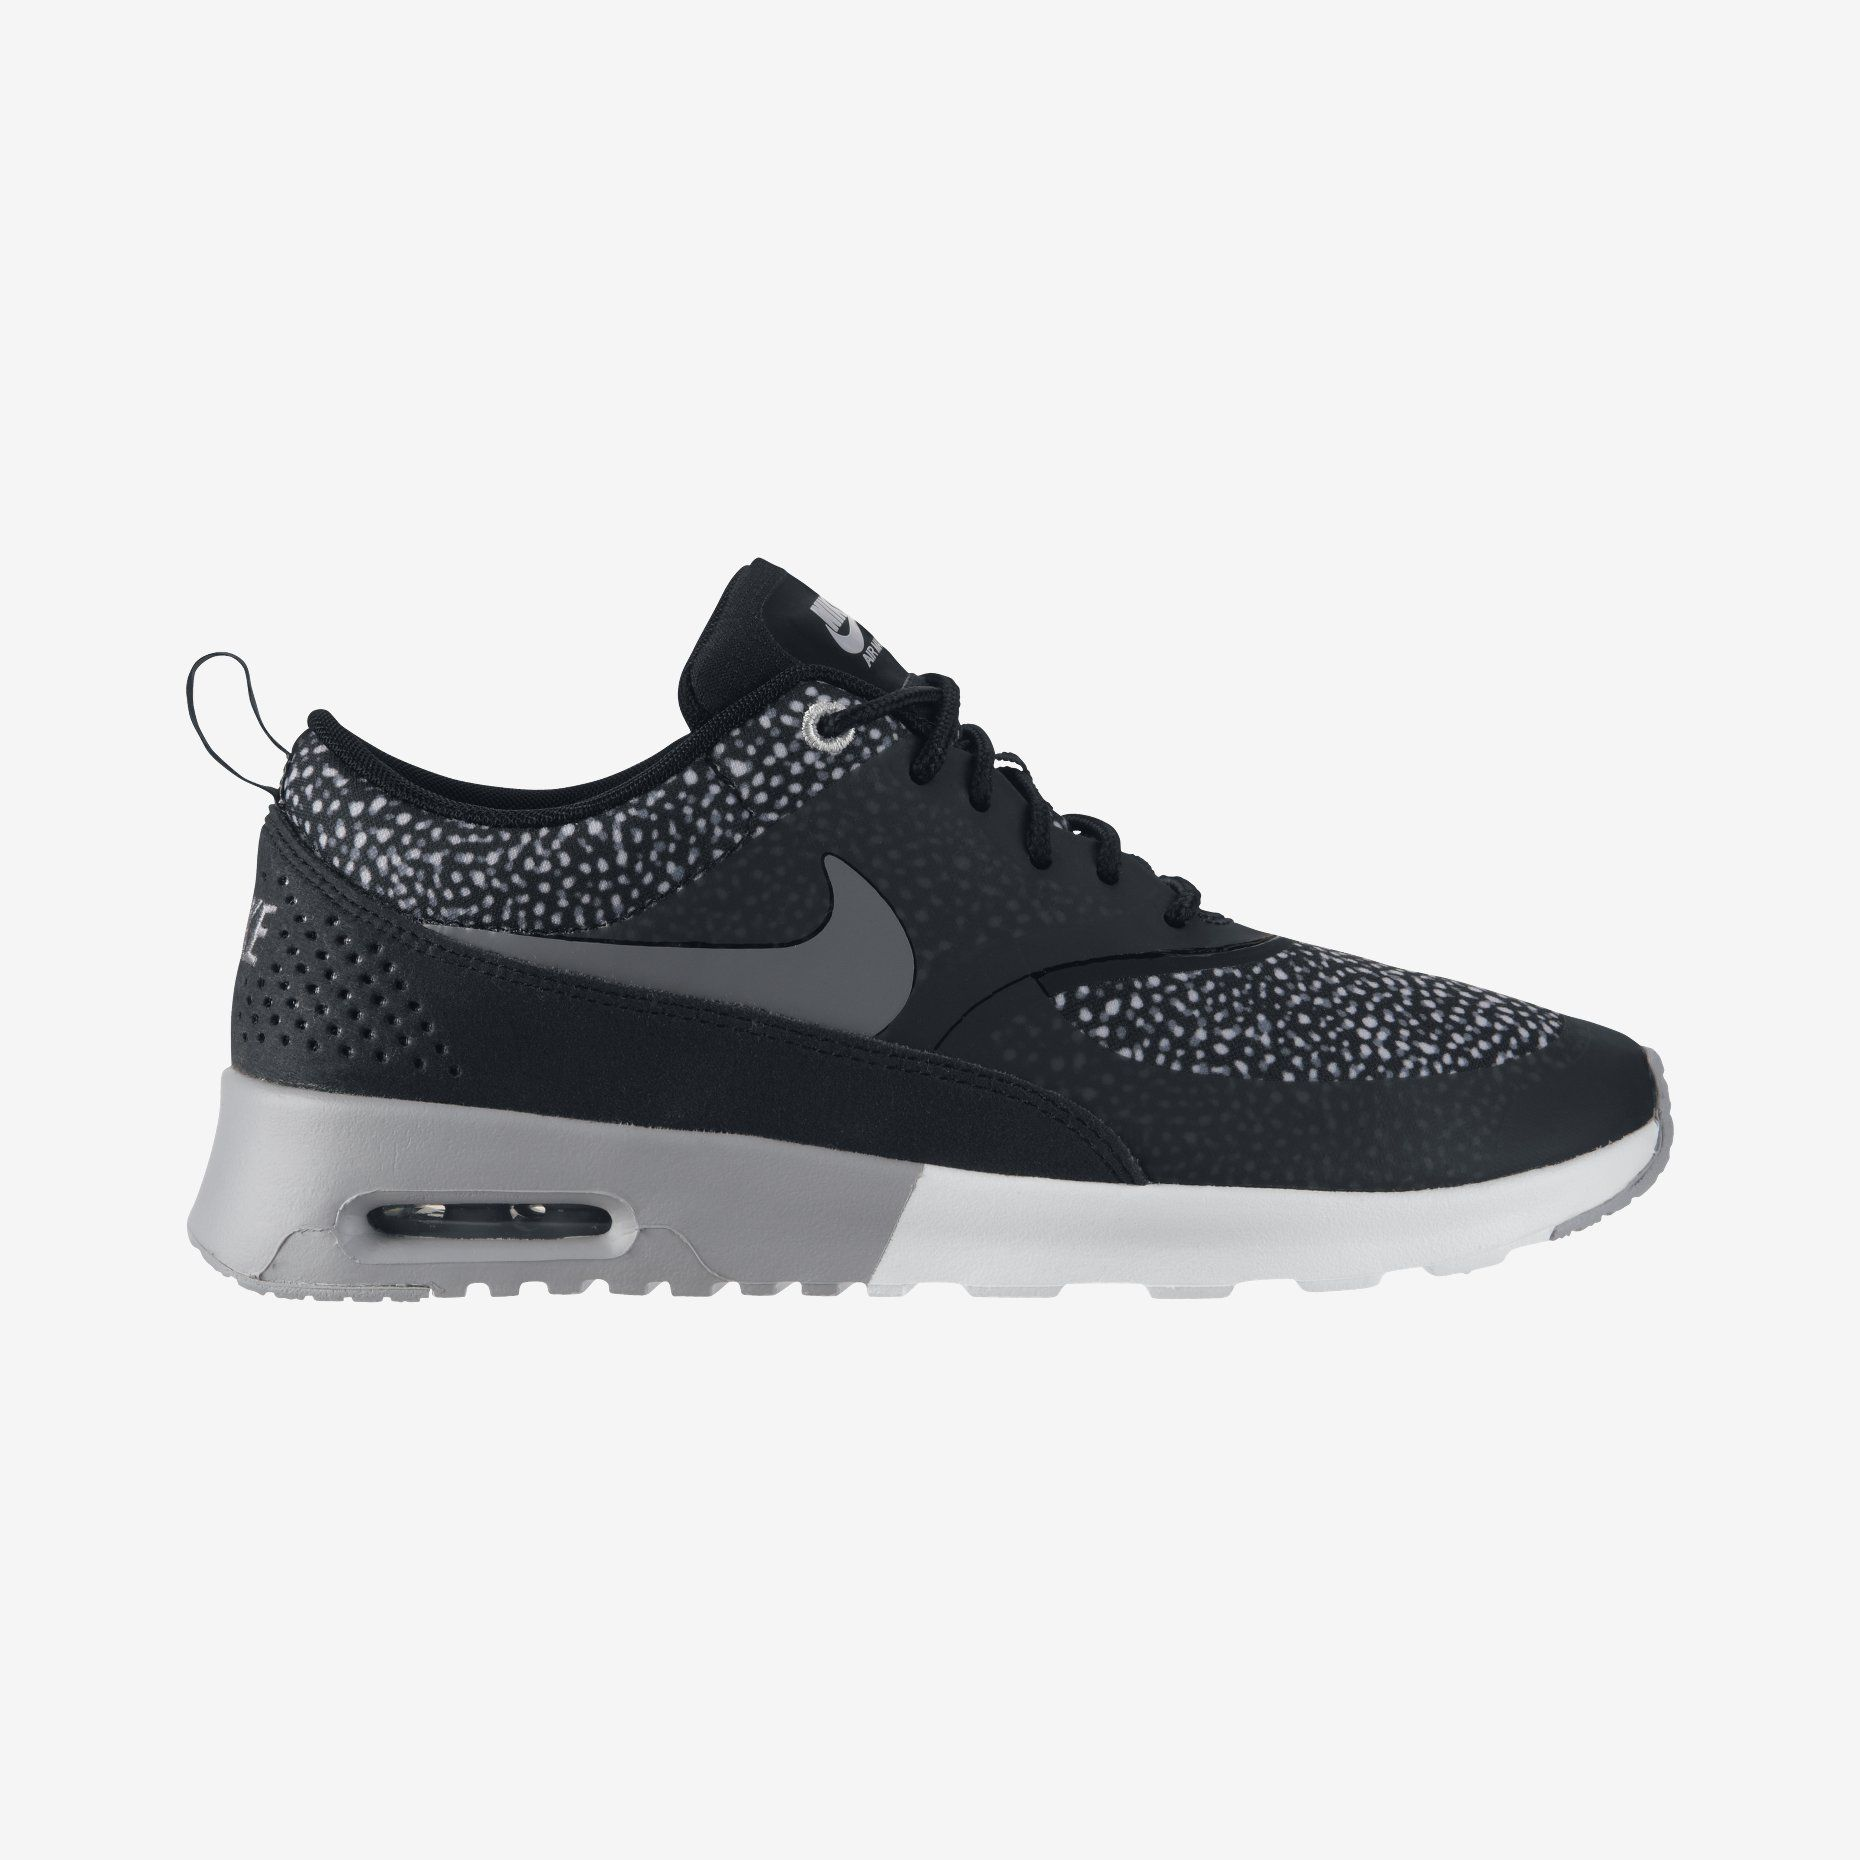 Nike Air Max Thea Womens Magasin Noir Et Blanc